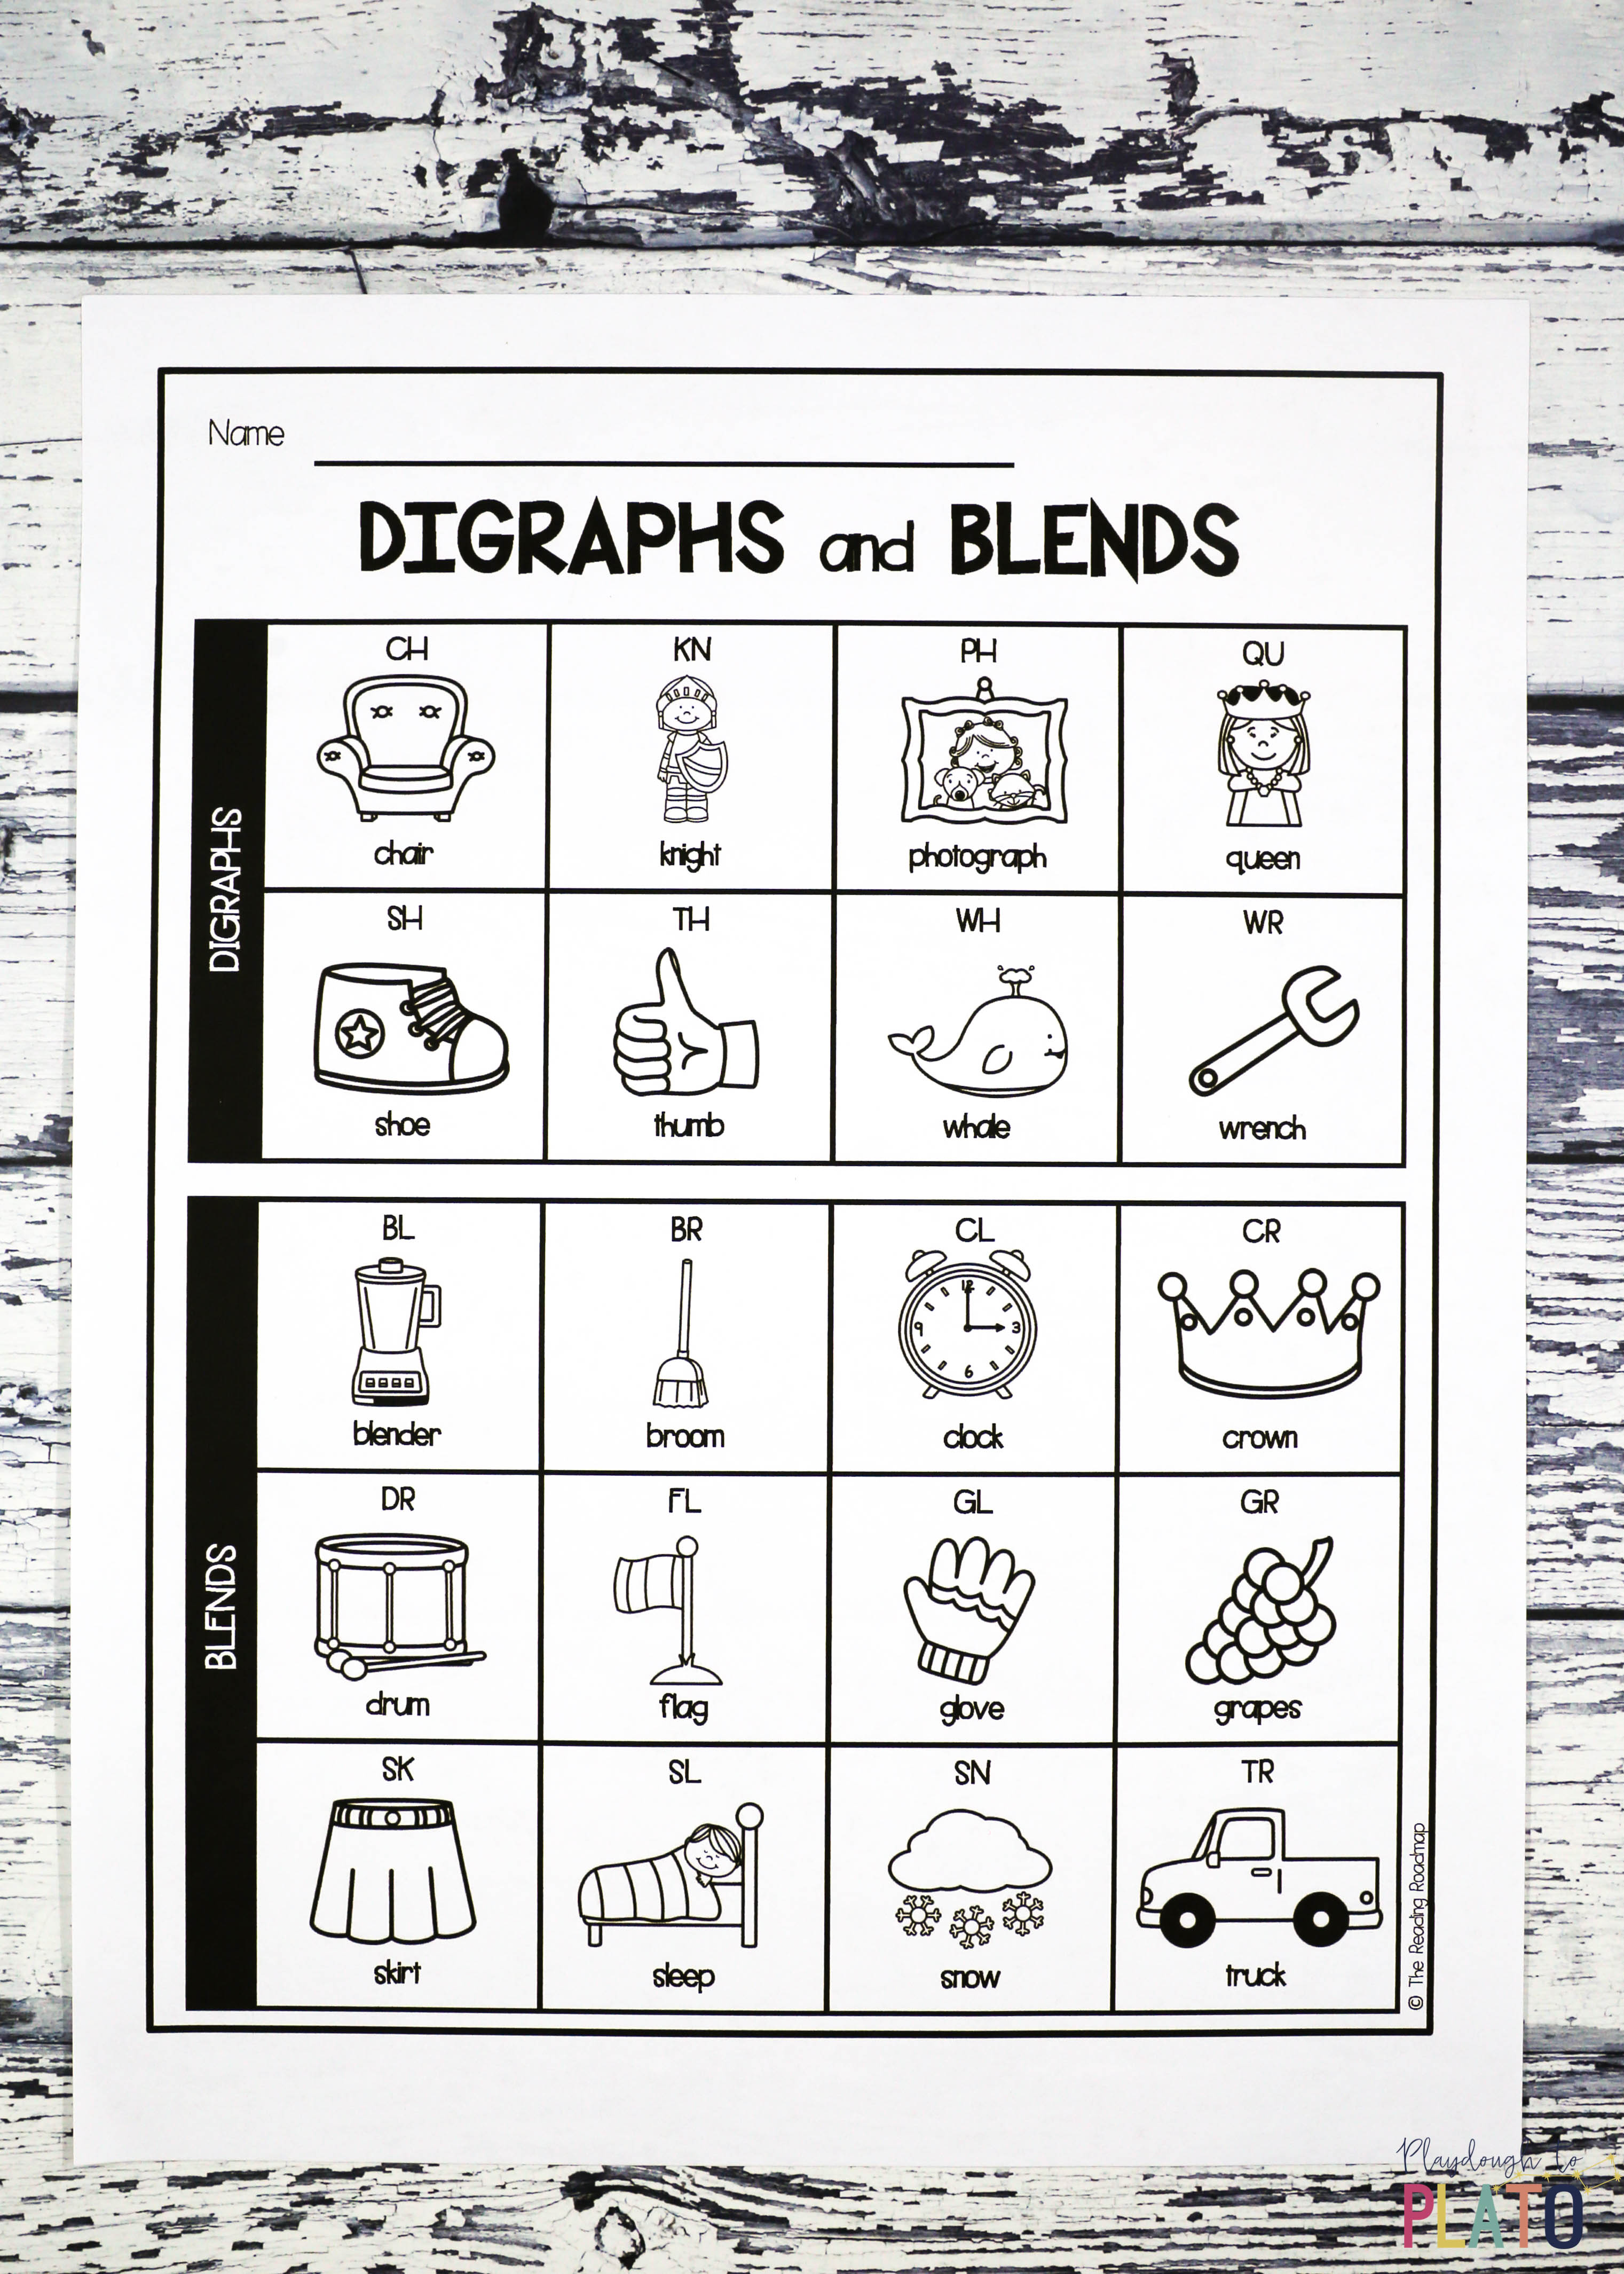 Digraph and blend chart playdough to plato and one in ink saving black and white nvjuhfo Choice Image